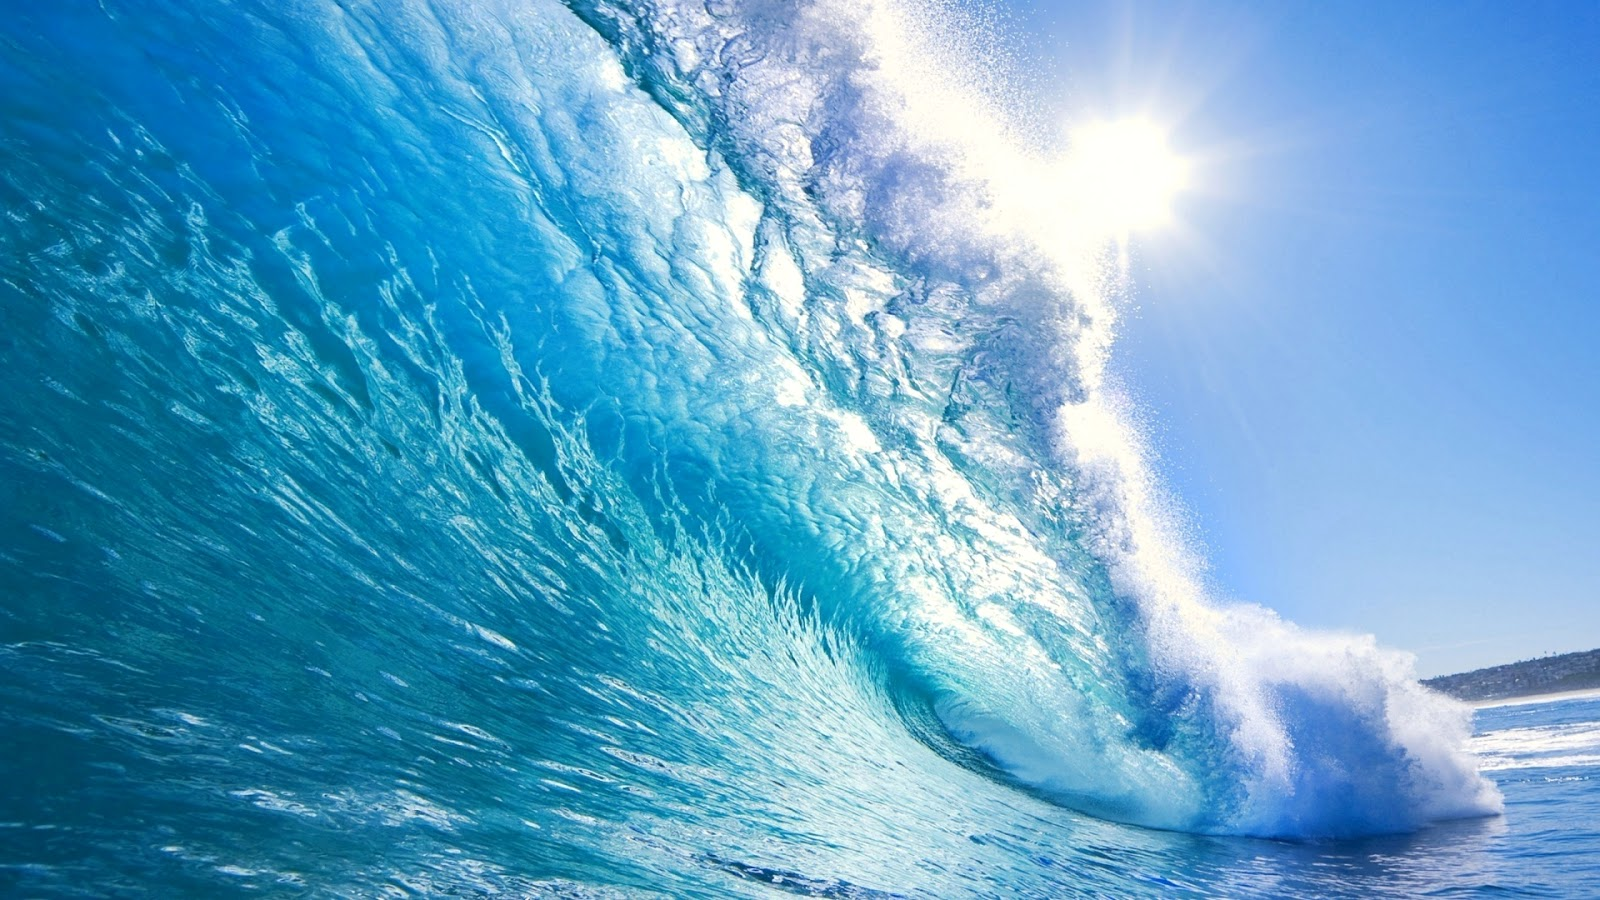 Beautiful Wallpapers water waves wallpaper 1600x900